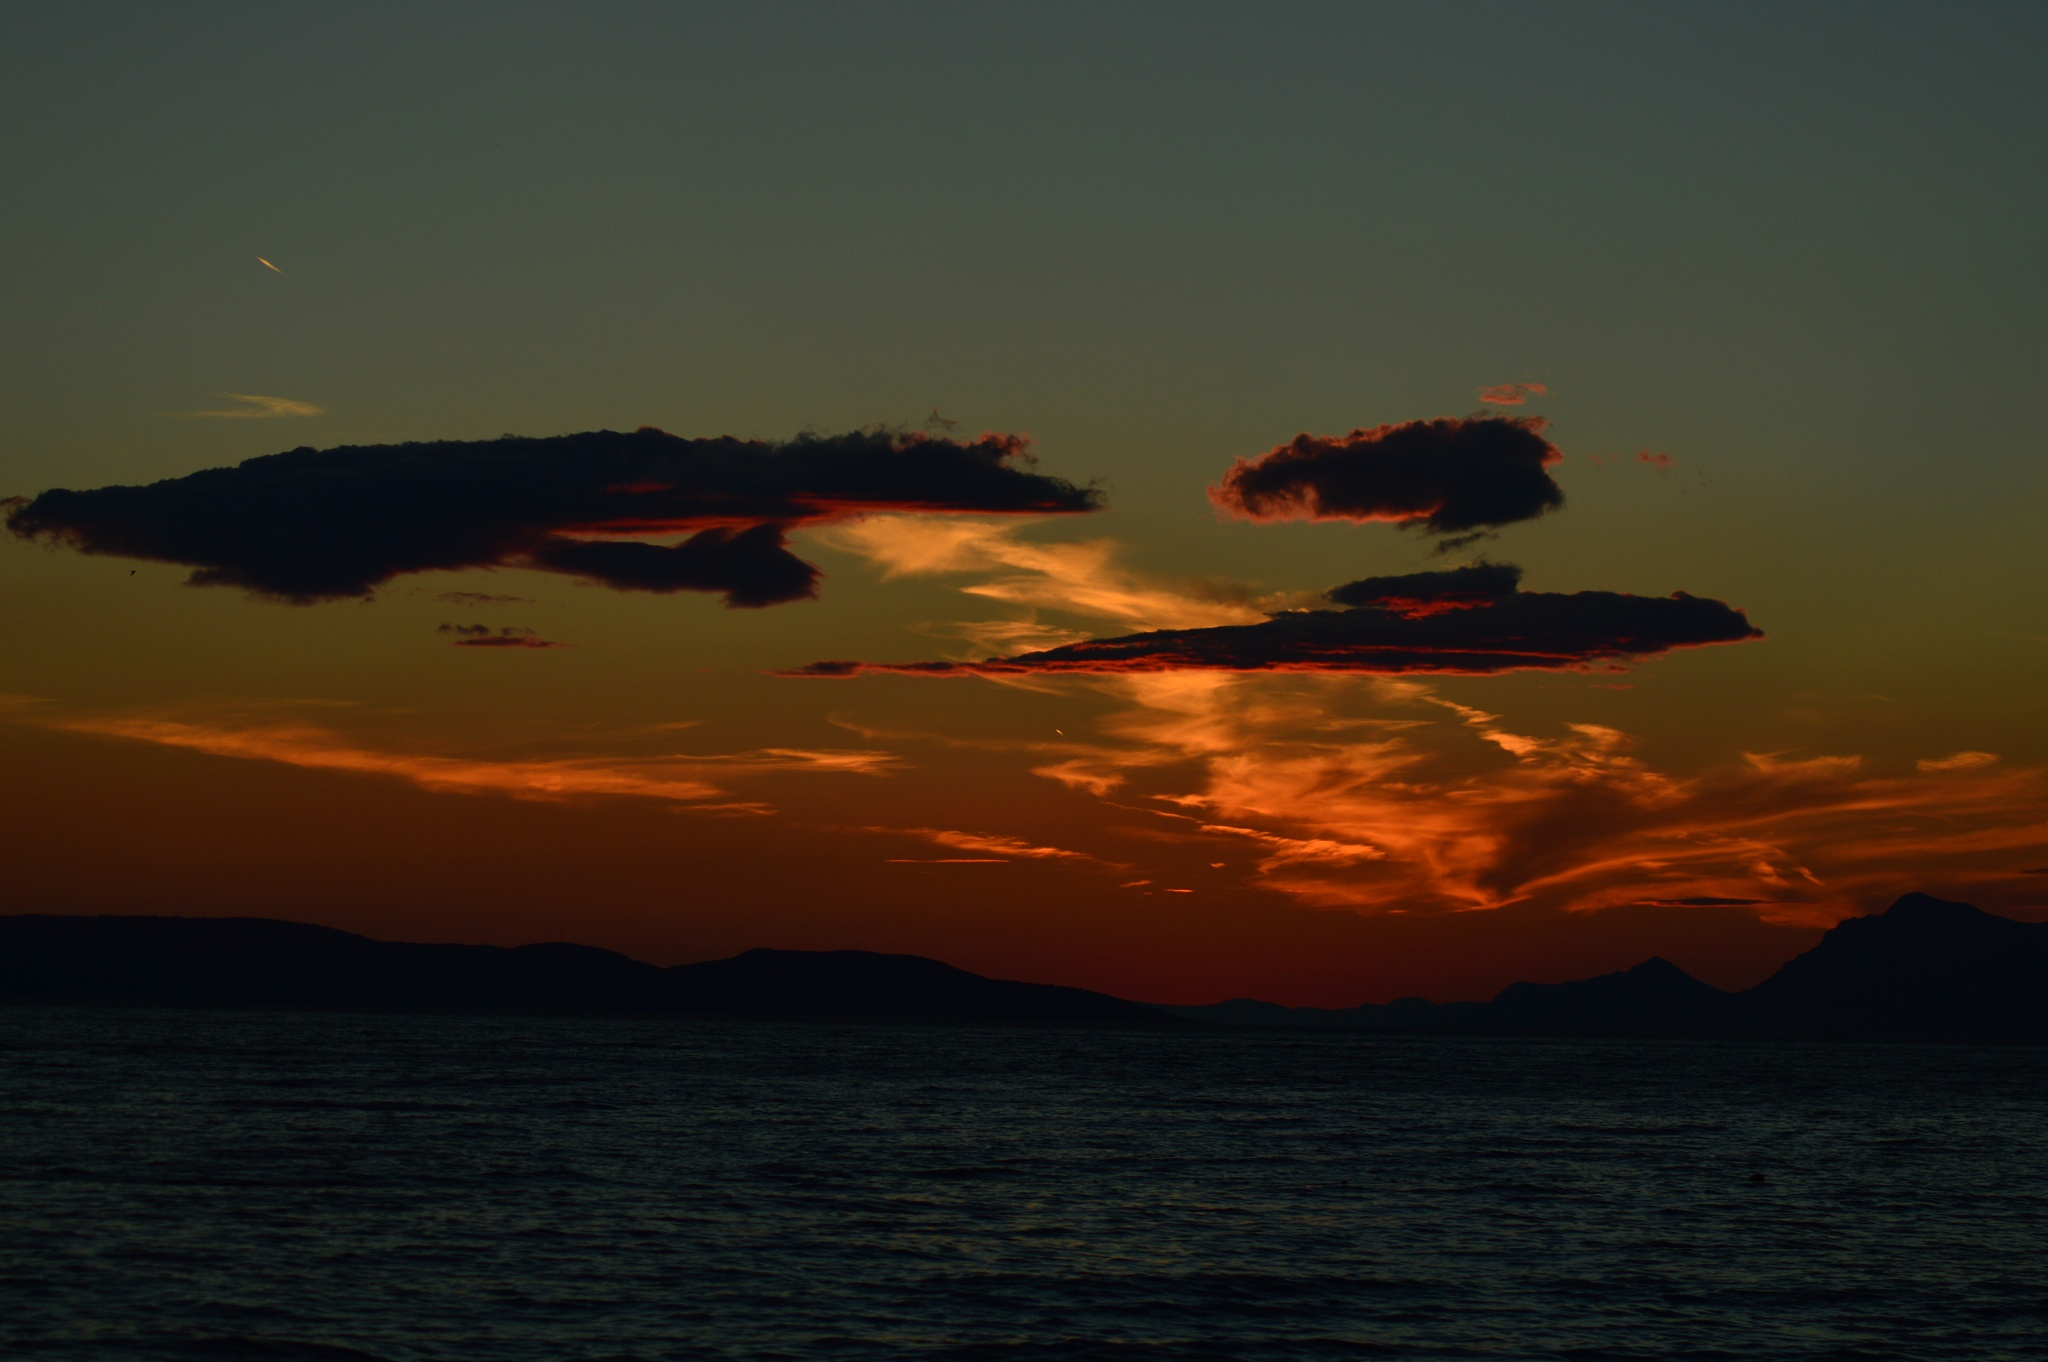 sunset over the sea by KaSab